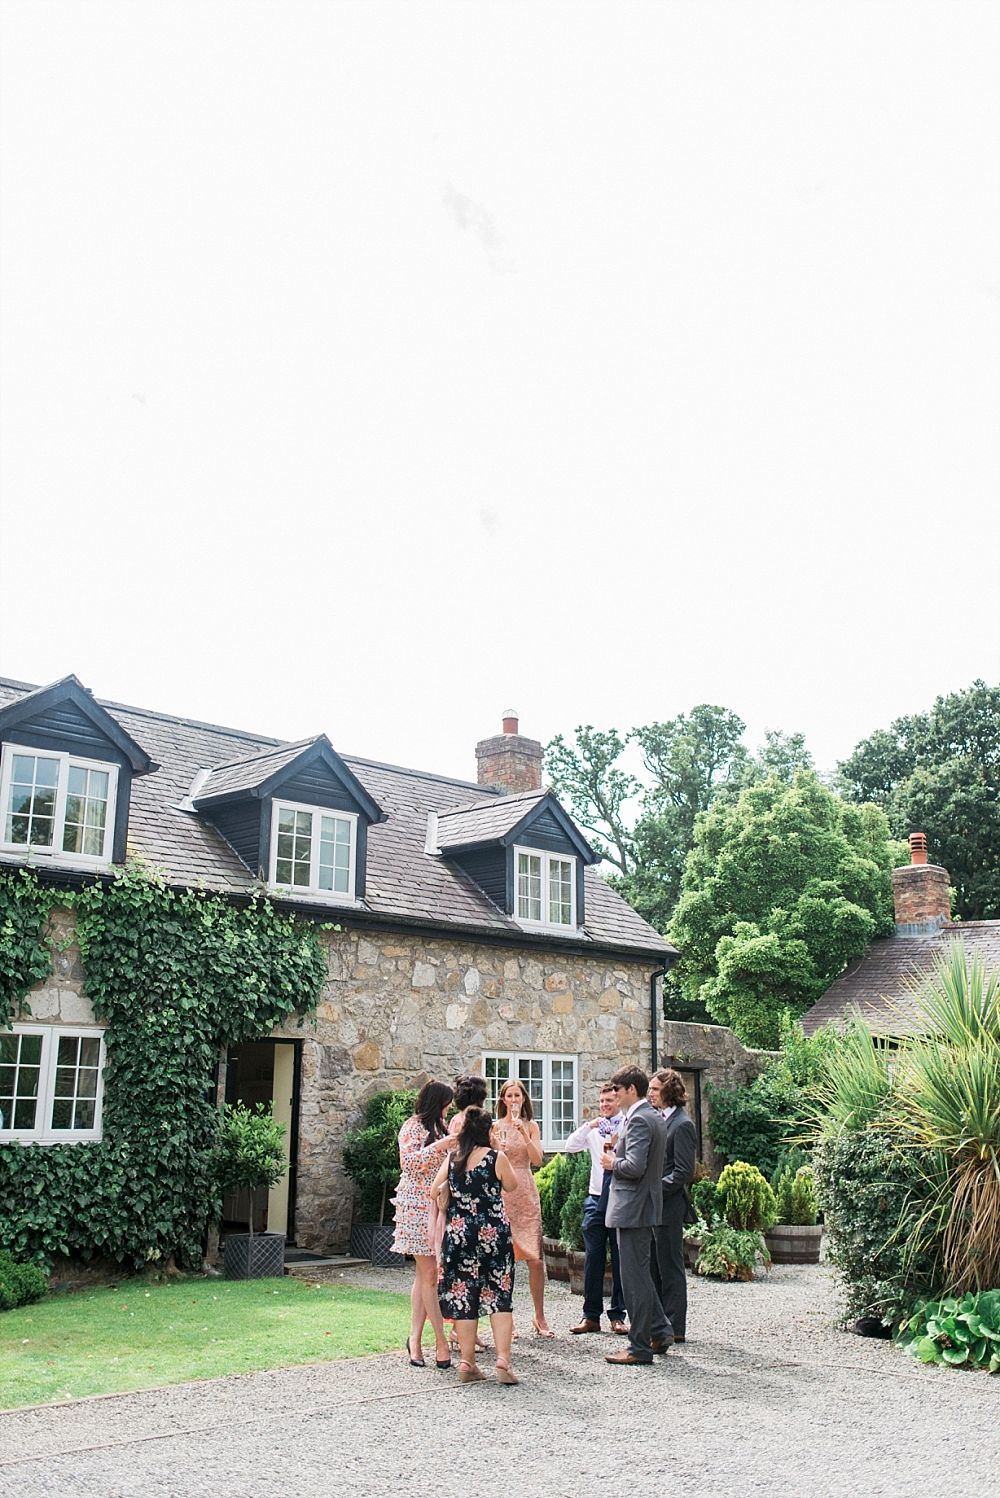 holiday cottages wedding